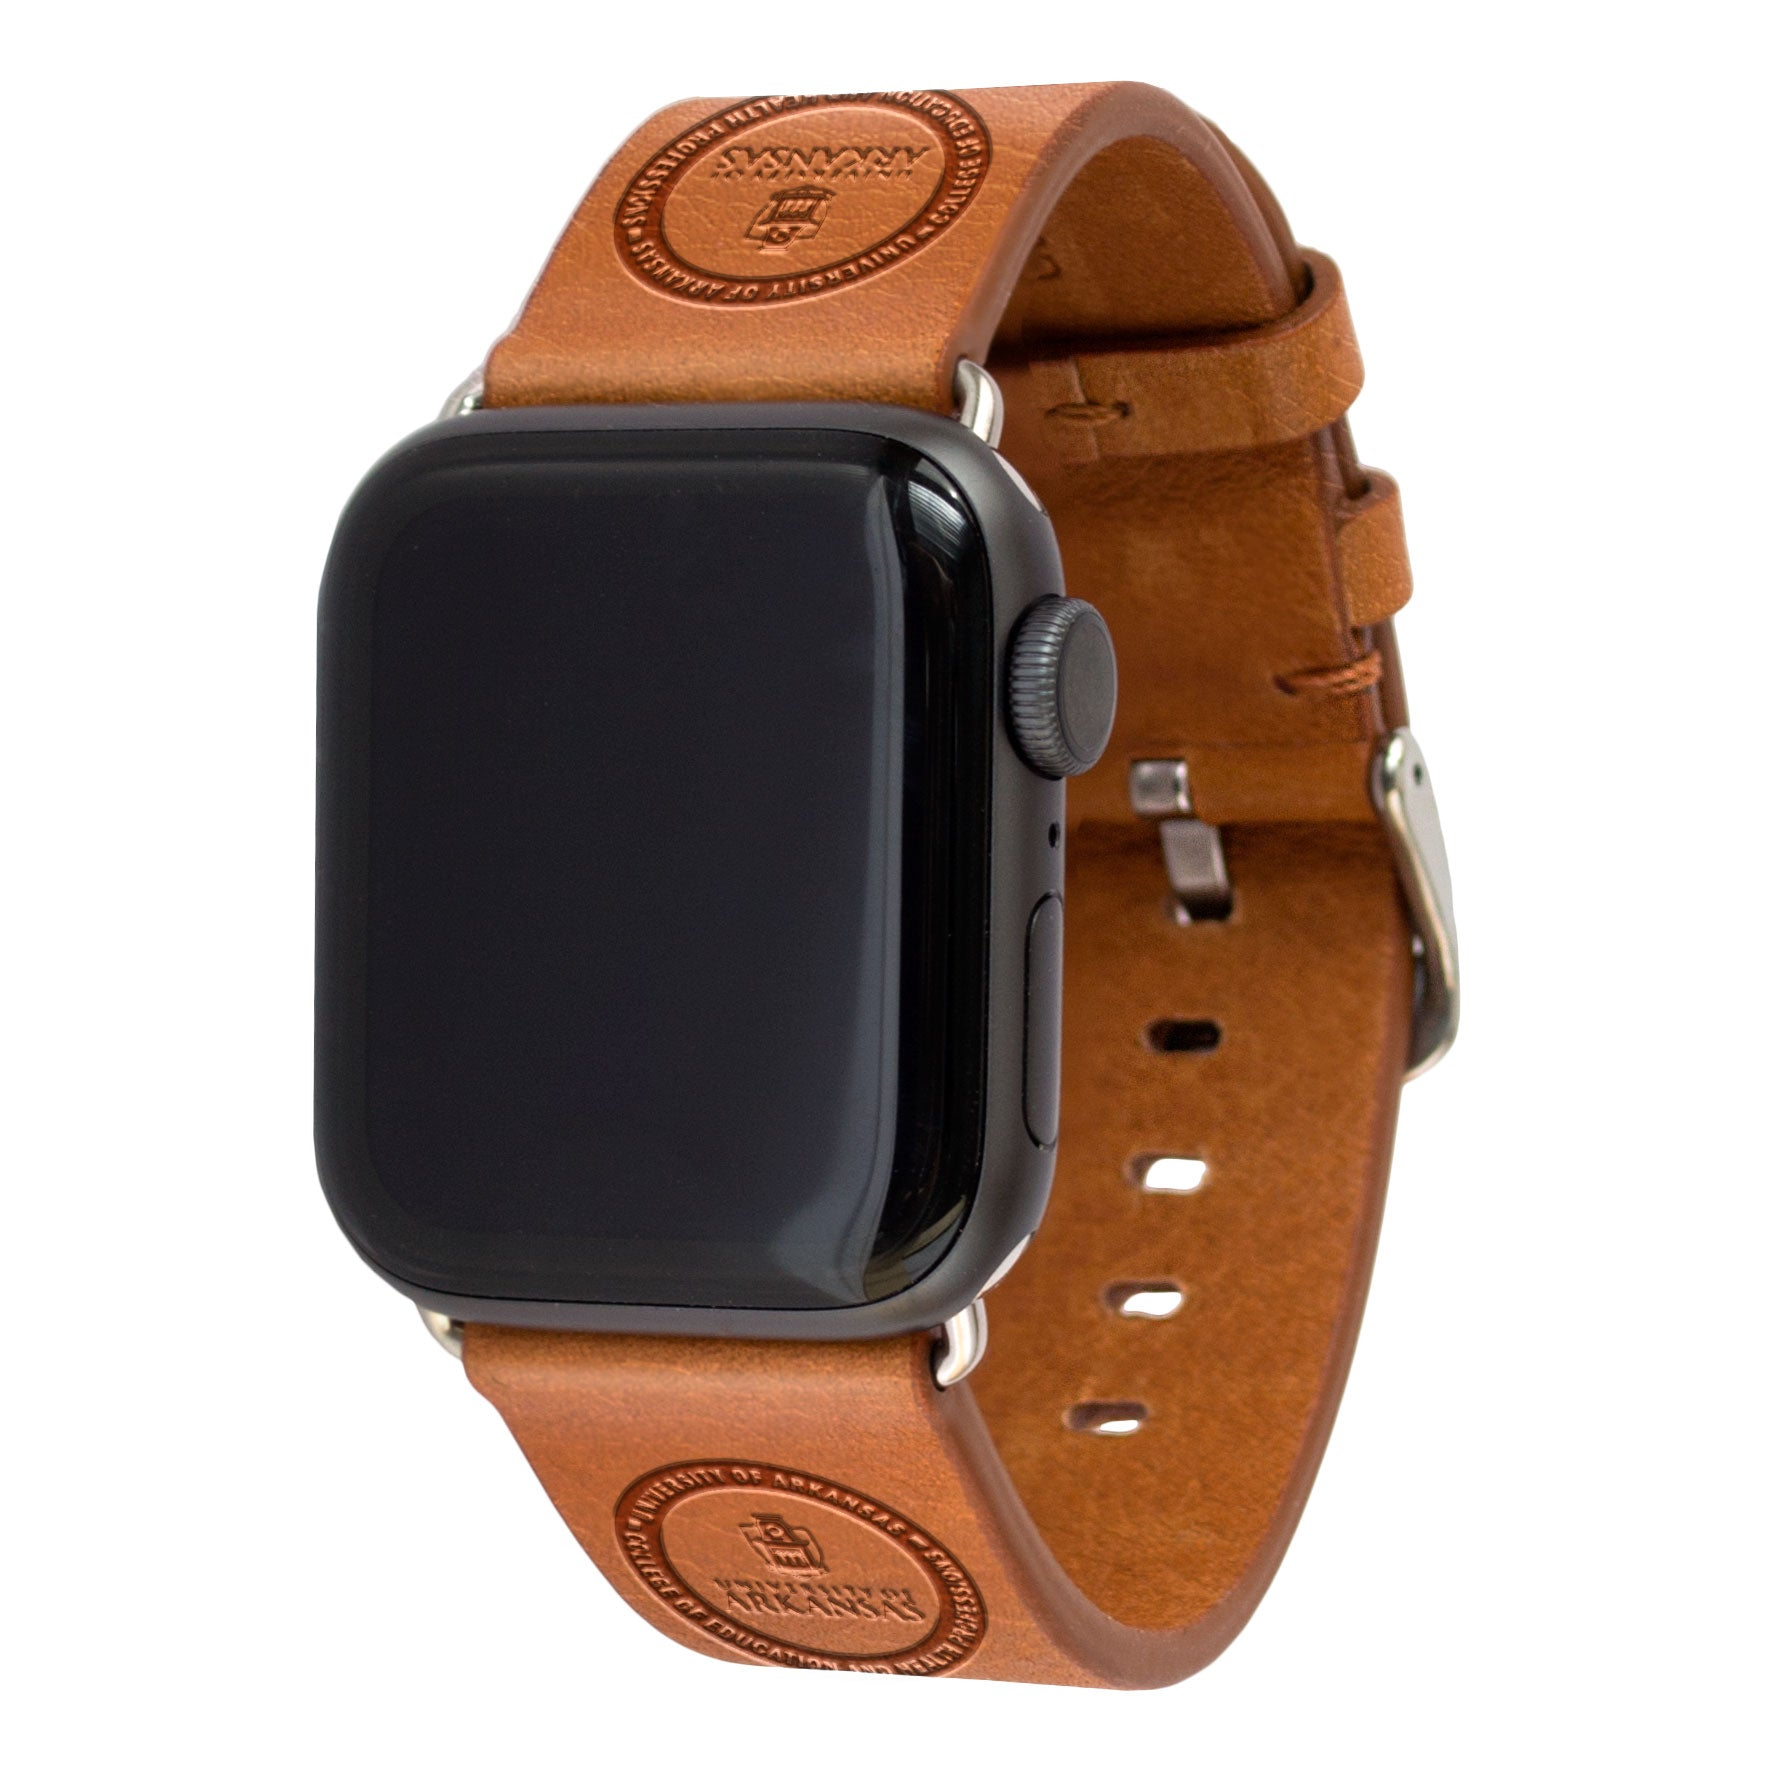 University of Arkansas College of Education and Health Professions Leather Apple Watch Band